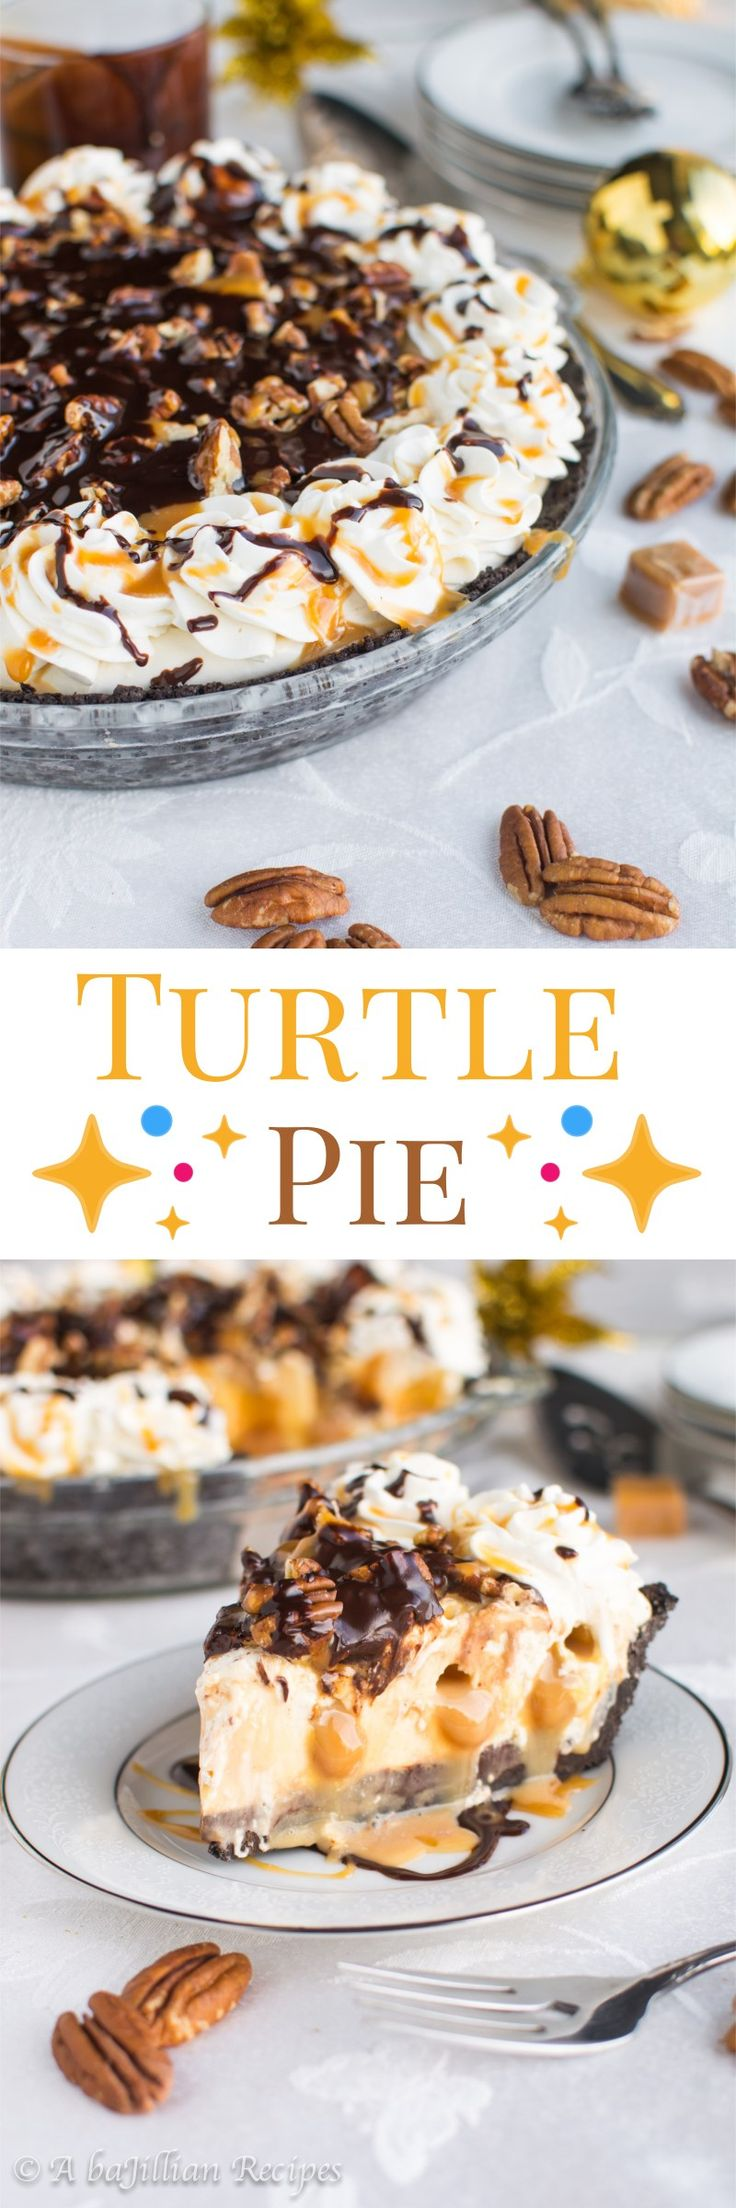 Turtle Pie - An Oreo cookie crust filled with a layer of dark chocolate ganache, a no-bake cheesecake filling INJECTED with pockets of caramel, and topped with caramel, ganache, and chopped pecans!